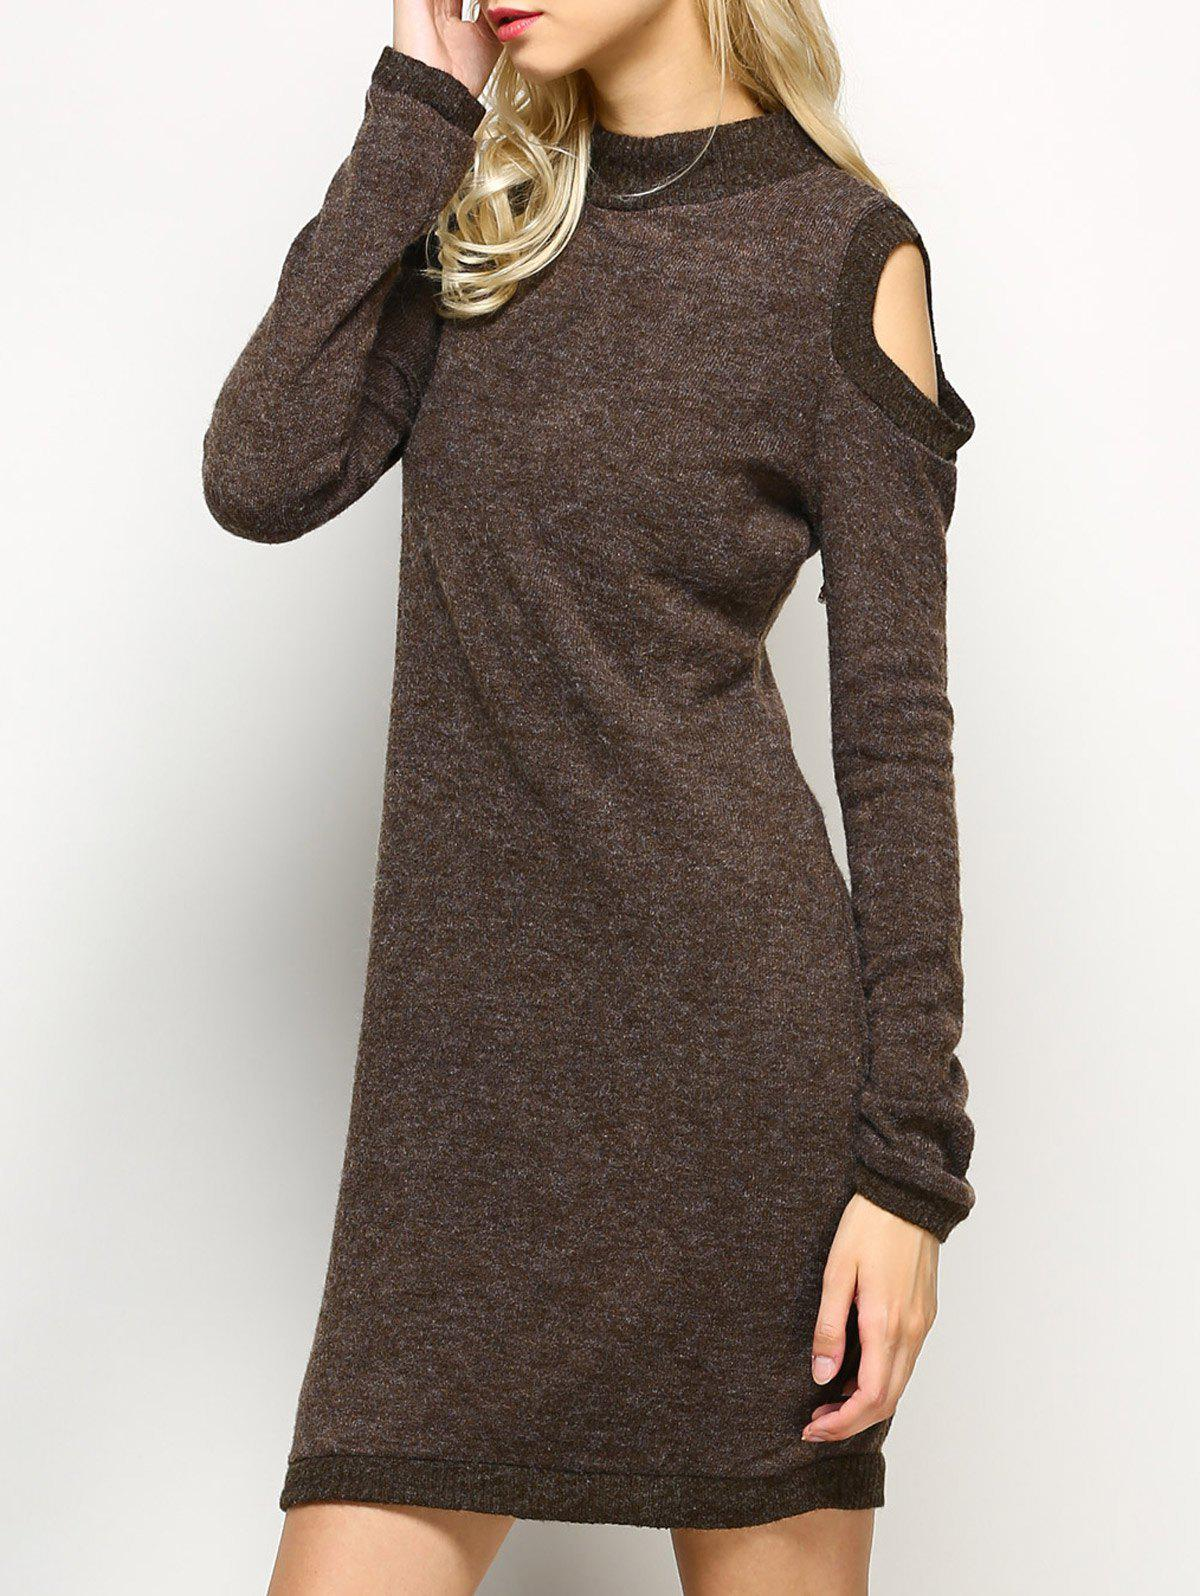 Long Sleeve Cold Shoulder High Neck Bodycon Dress - LIGHT COFFEE L